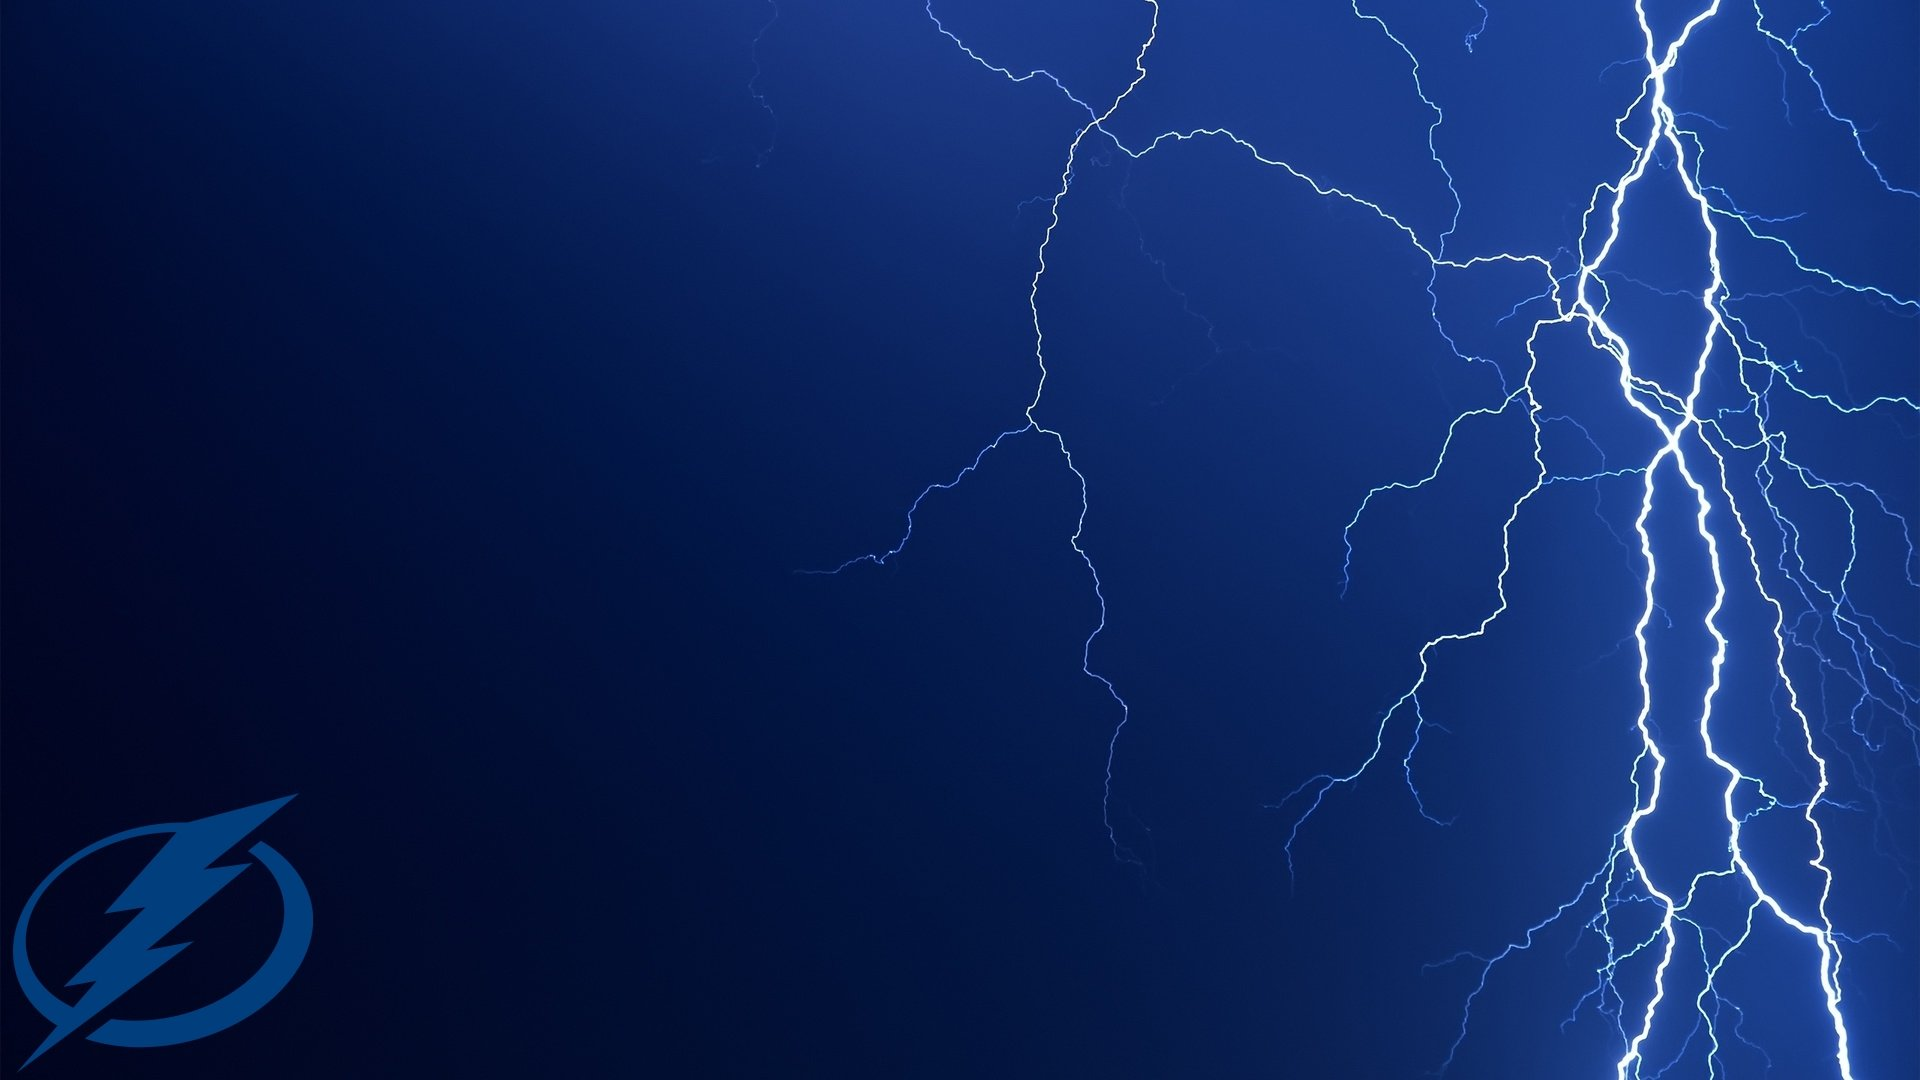 Download Full Hd 1080p Tampa Bay Lightning Computer Background Id